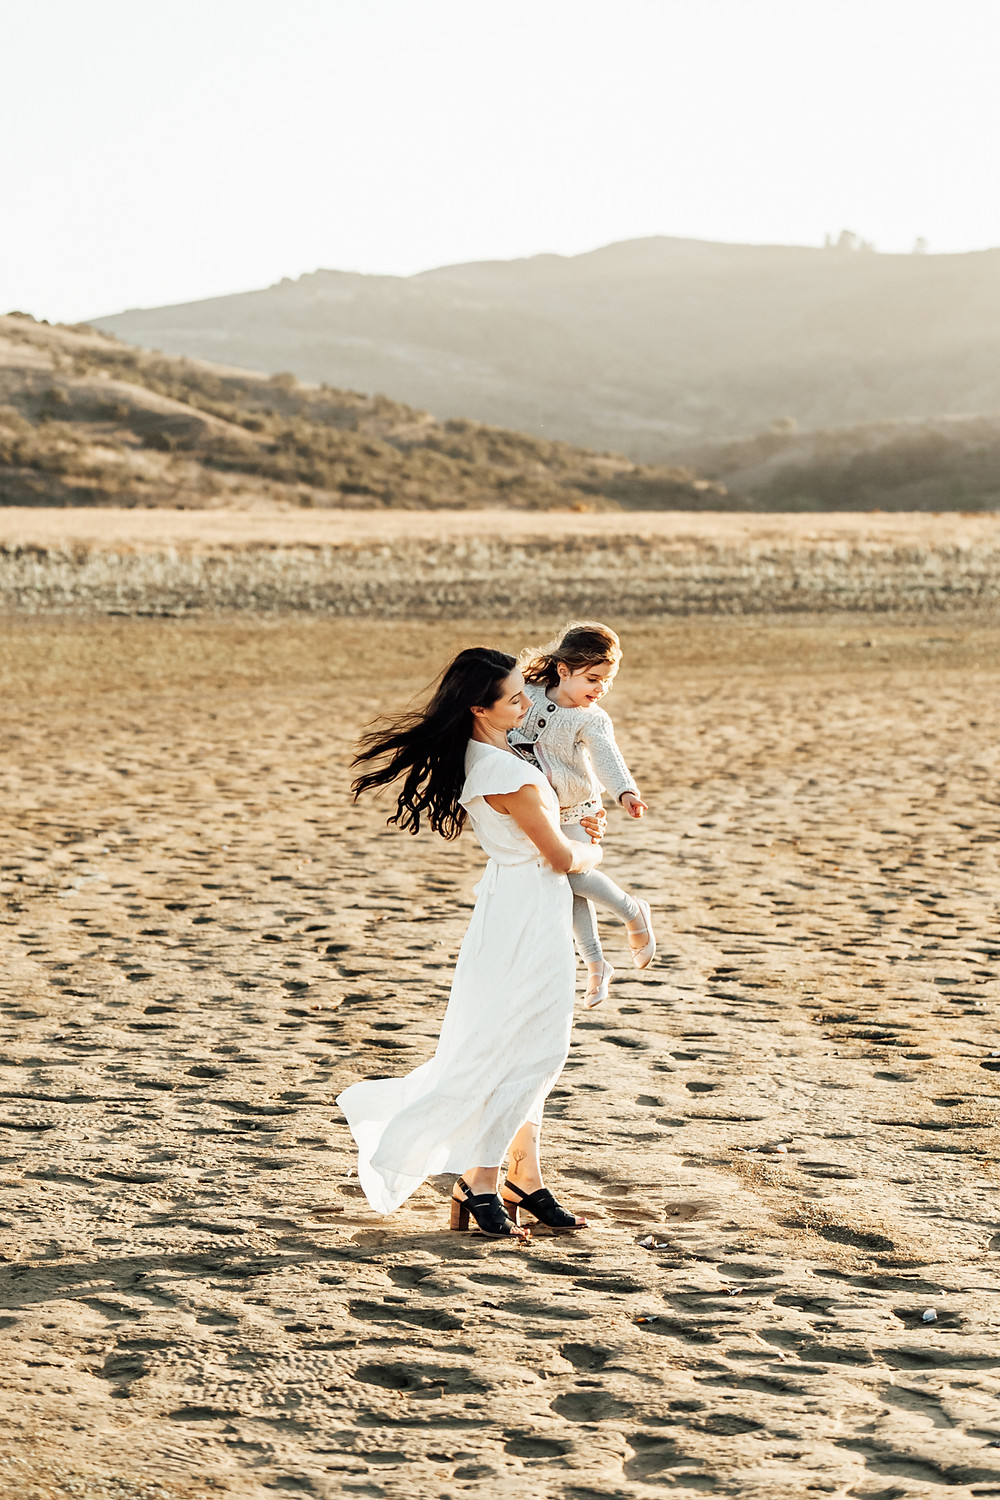 mom in long white maxi dress holding baby girl, wind and breeze in hair and dress, textured ground, sunset, motherhood family photographer Napa Novato Northern California Sonoma Diana Jex